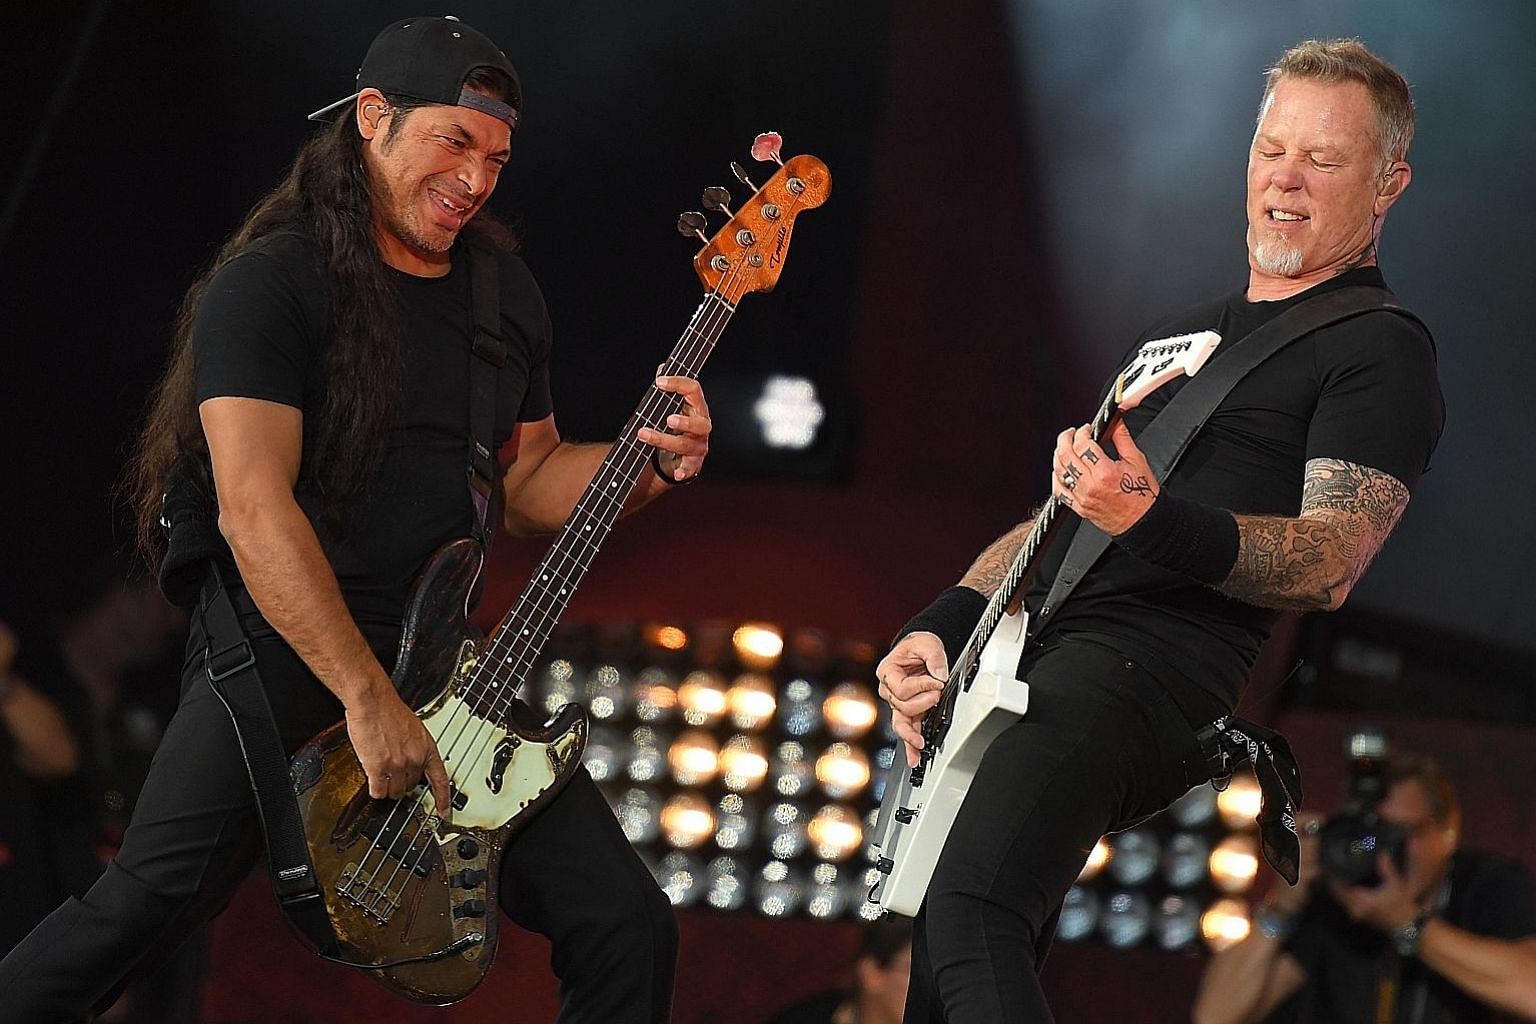 American heavy metal band Metallica will perform at the Singapore Indoor Stadium on Jan 22.